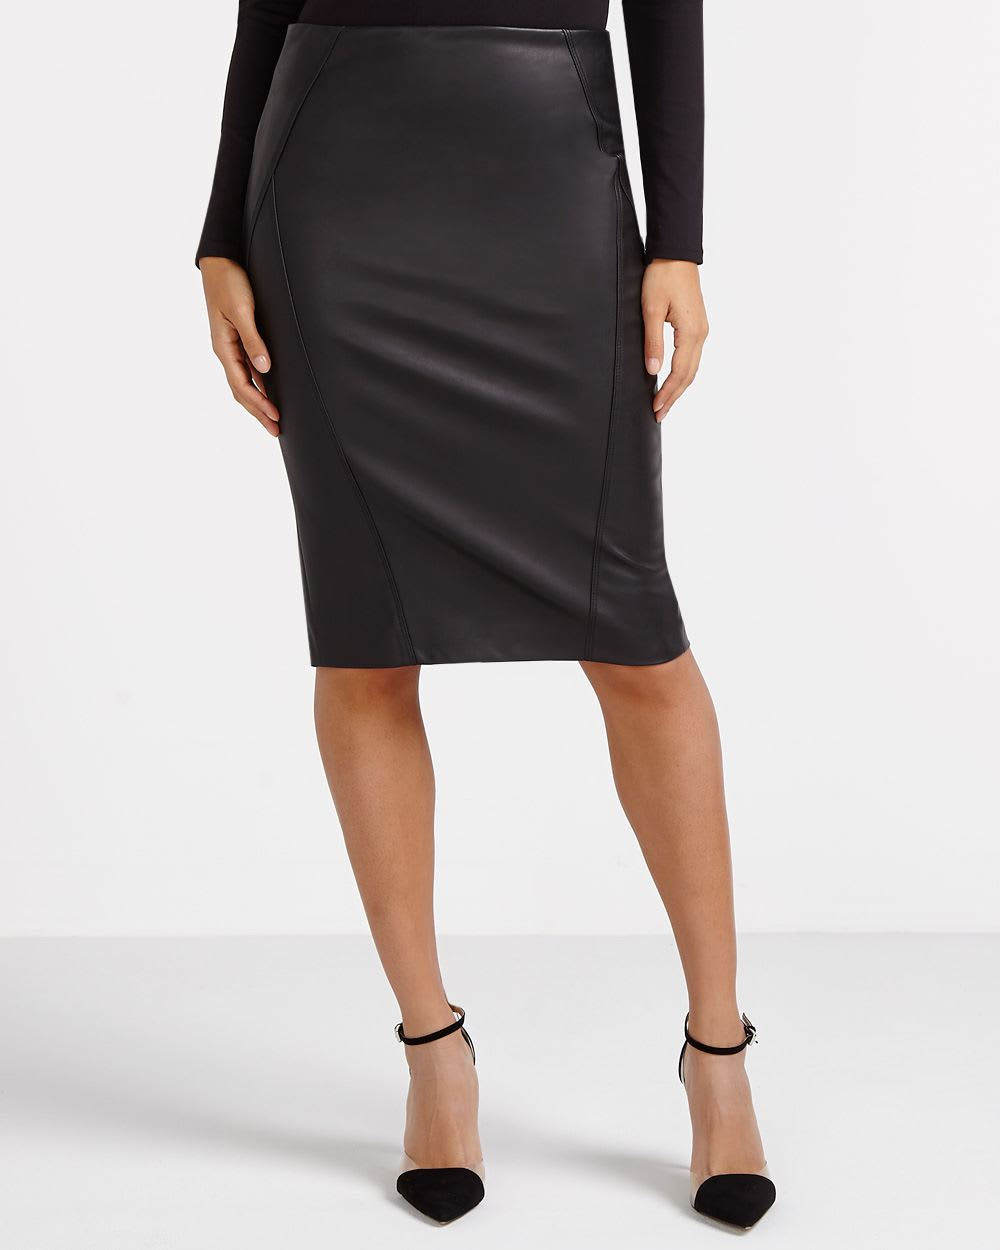 0d2941334e The Faux Leather Skirt by Meghan Markle | Women | Reitmans